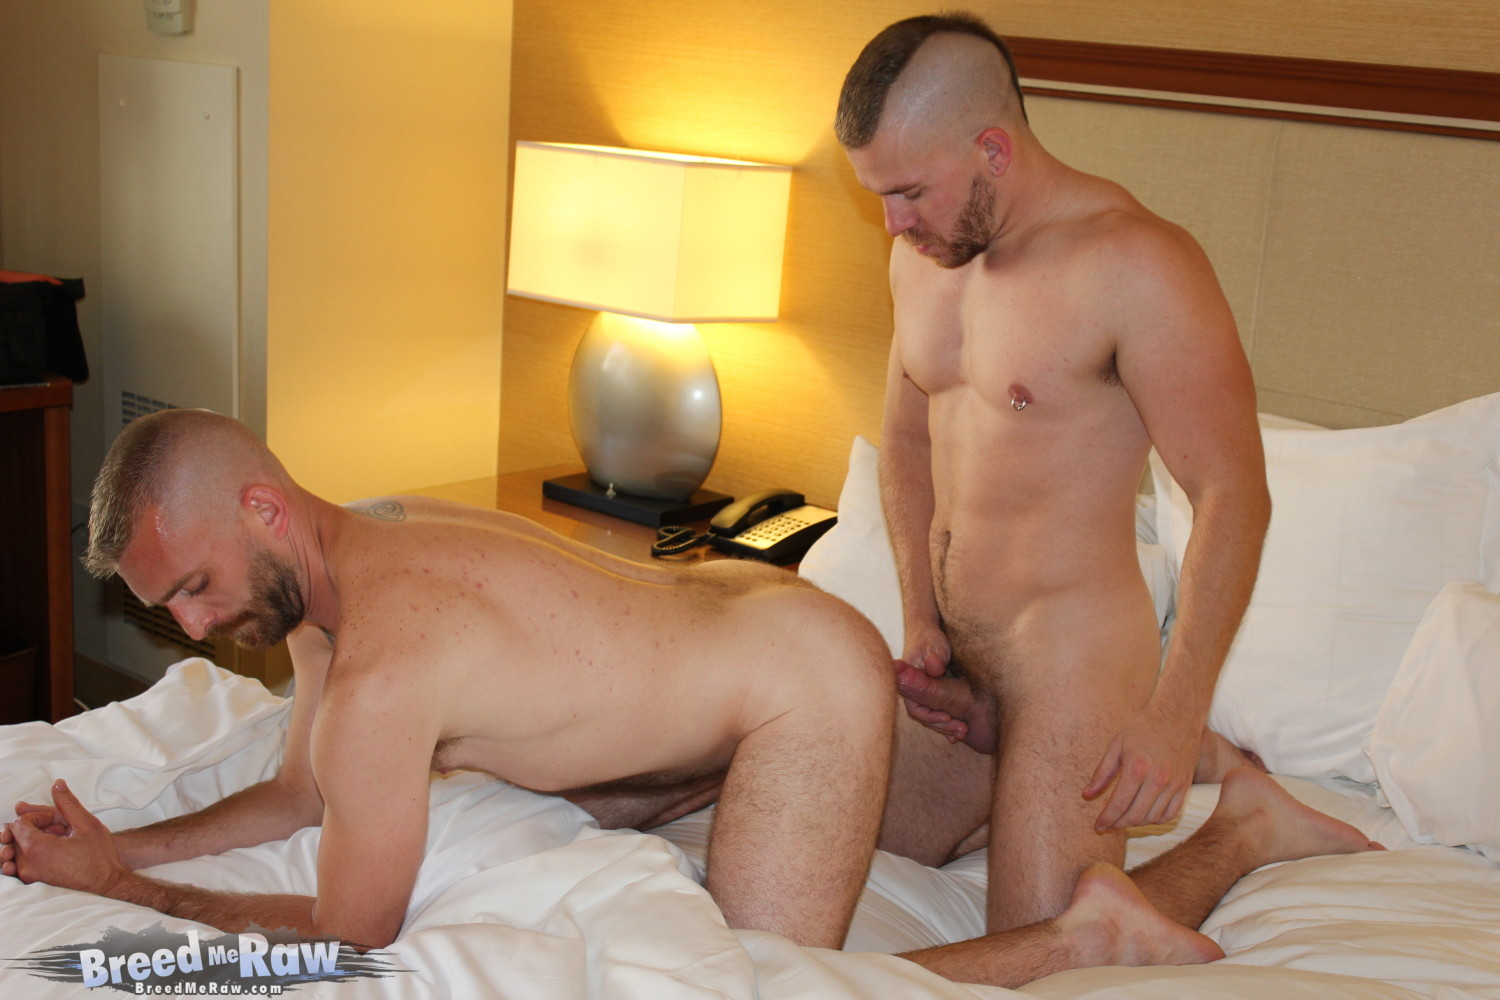 Breed-Me-Raw-Butch-Bloom-and-James-Roscoe-Bareback-Fucking-BBBH-Big-Cock-09 Hairy Hot Amateur Hole Gets Barebacked By A Masculine Hung Cock